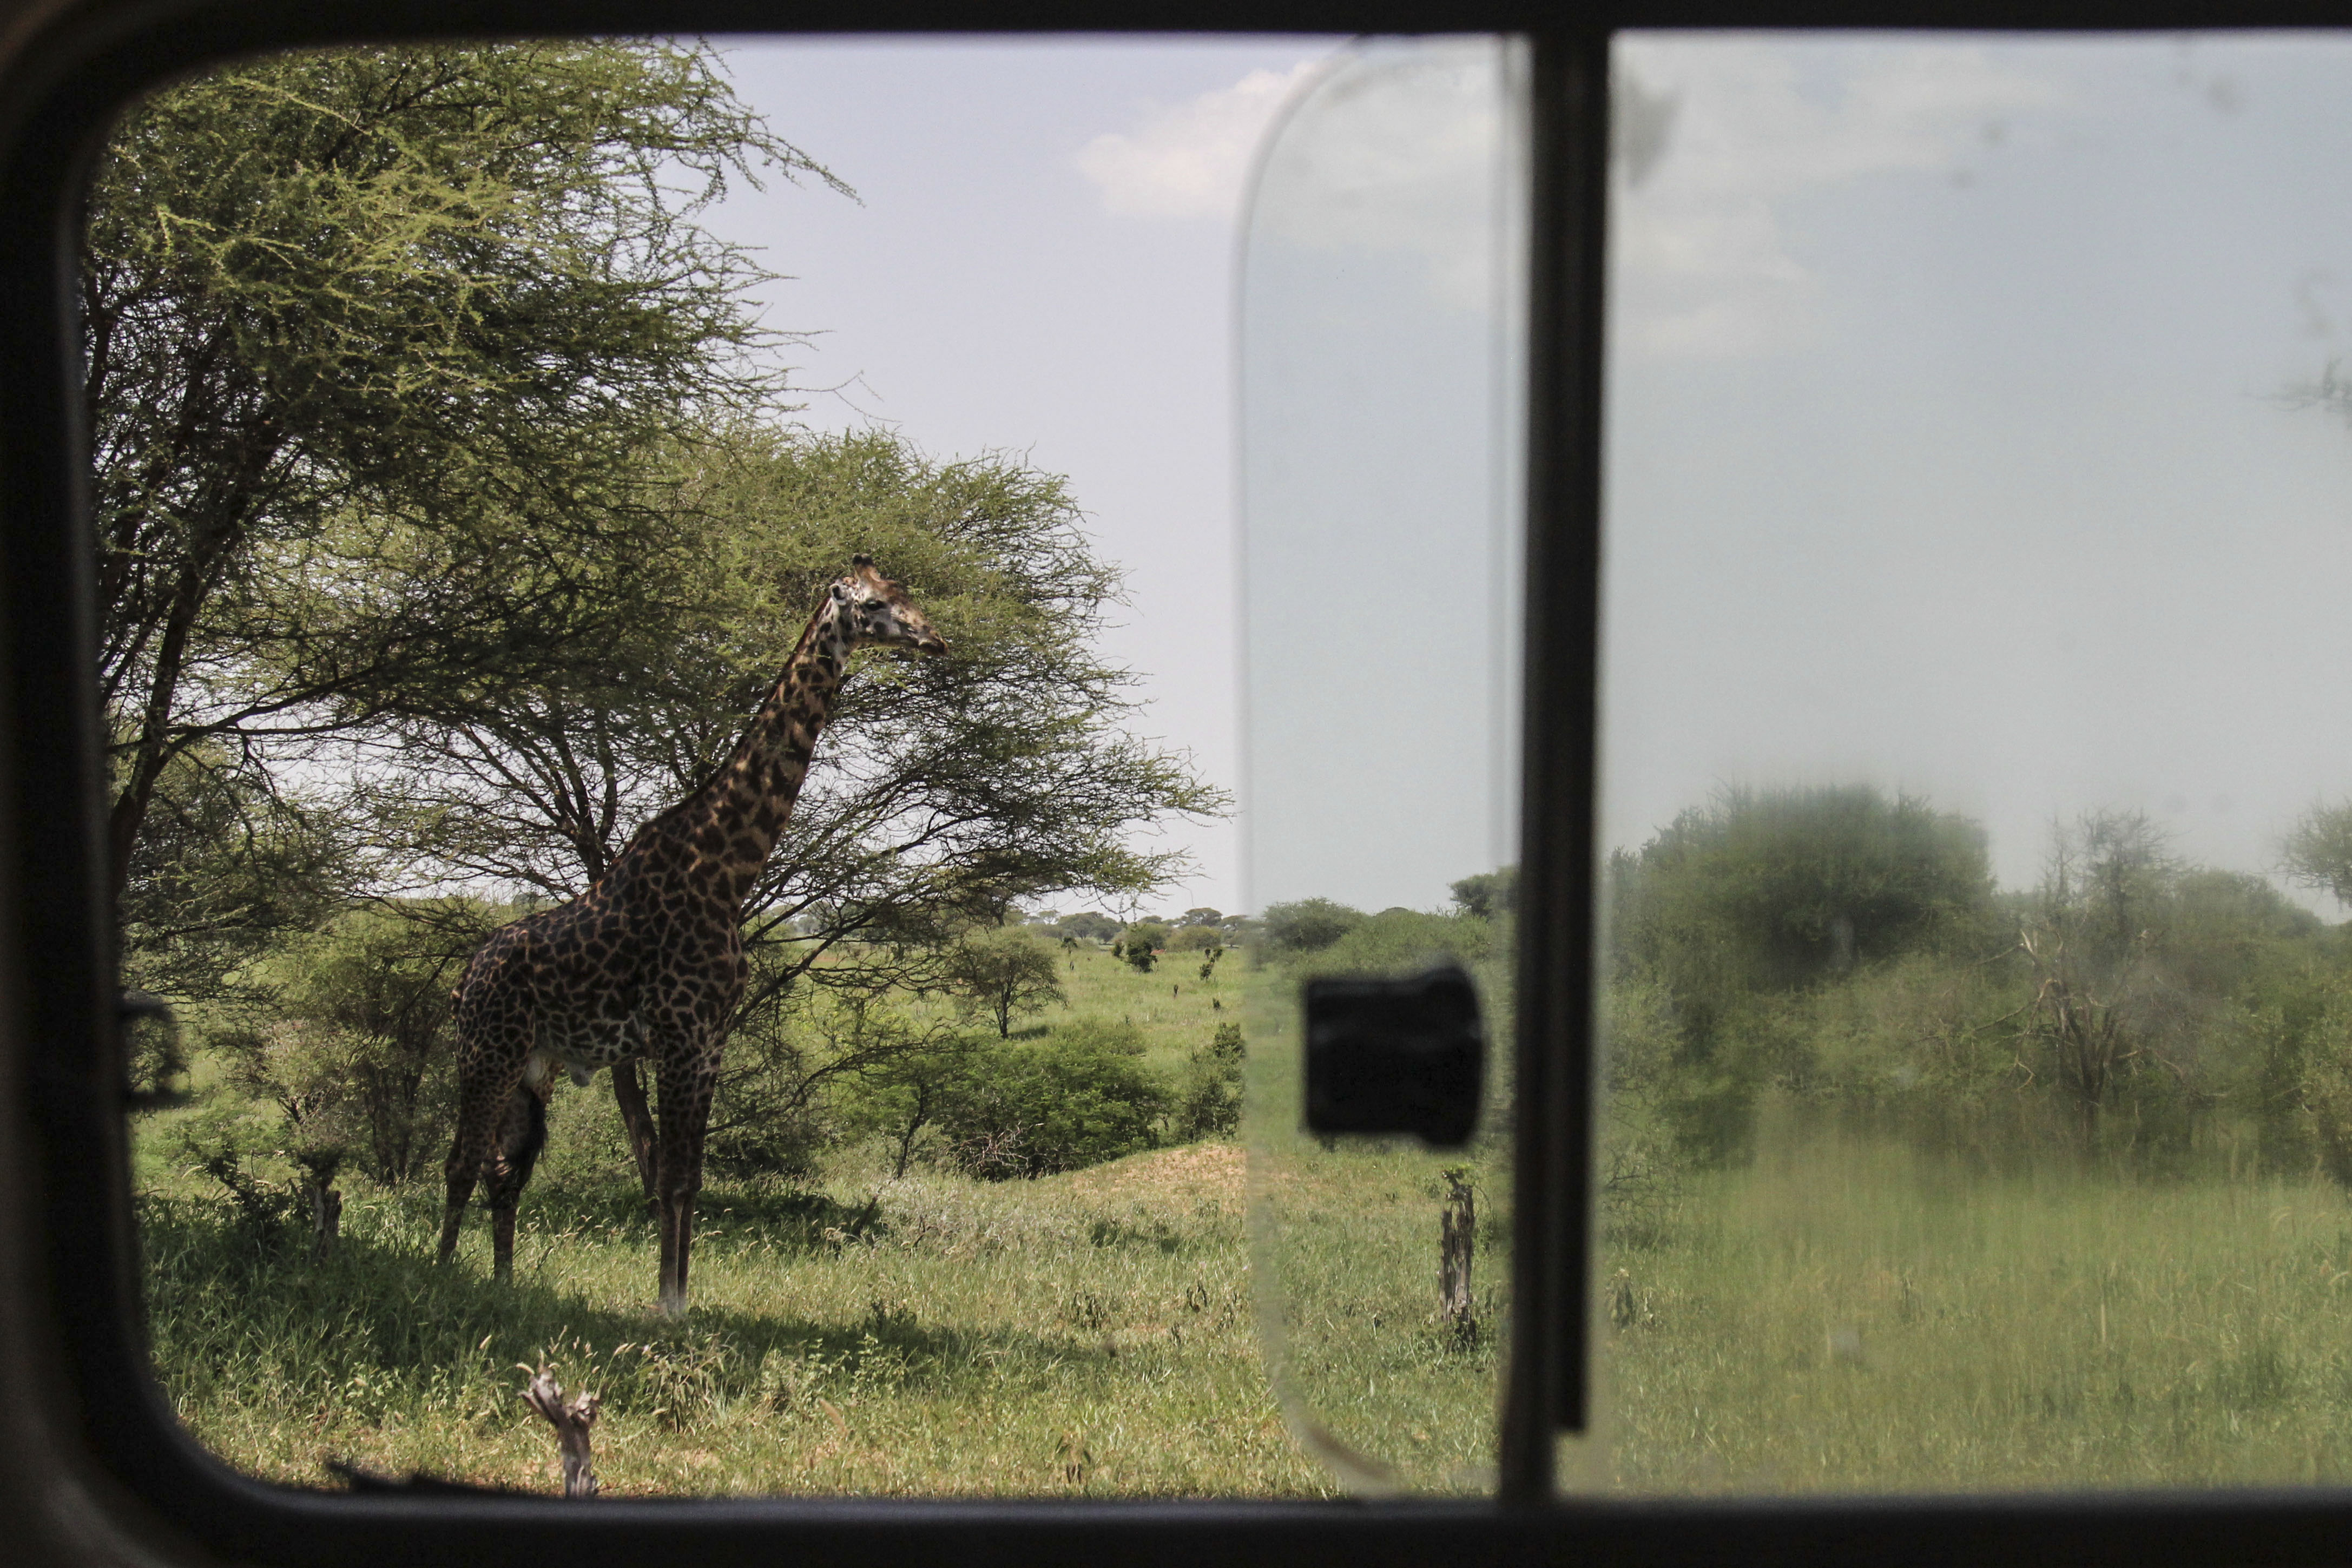 Giraffes face extinction as their numbers decline rapidly due to shrinking habitats